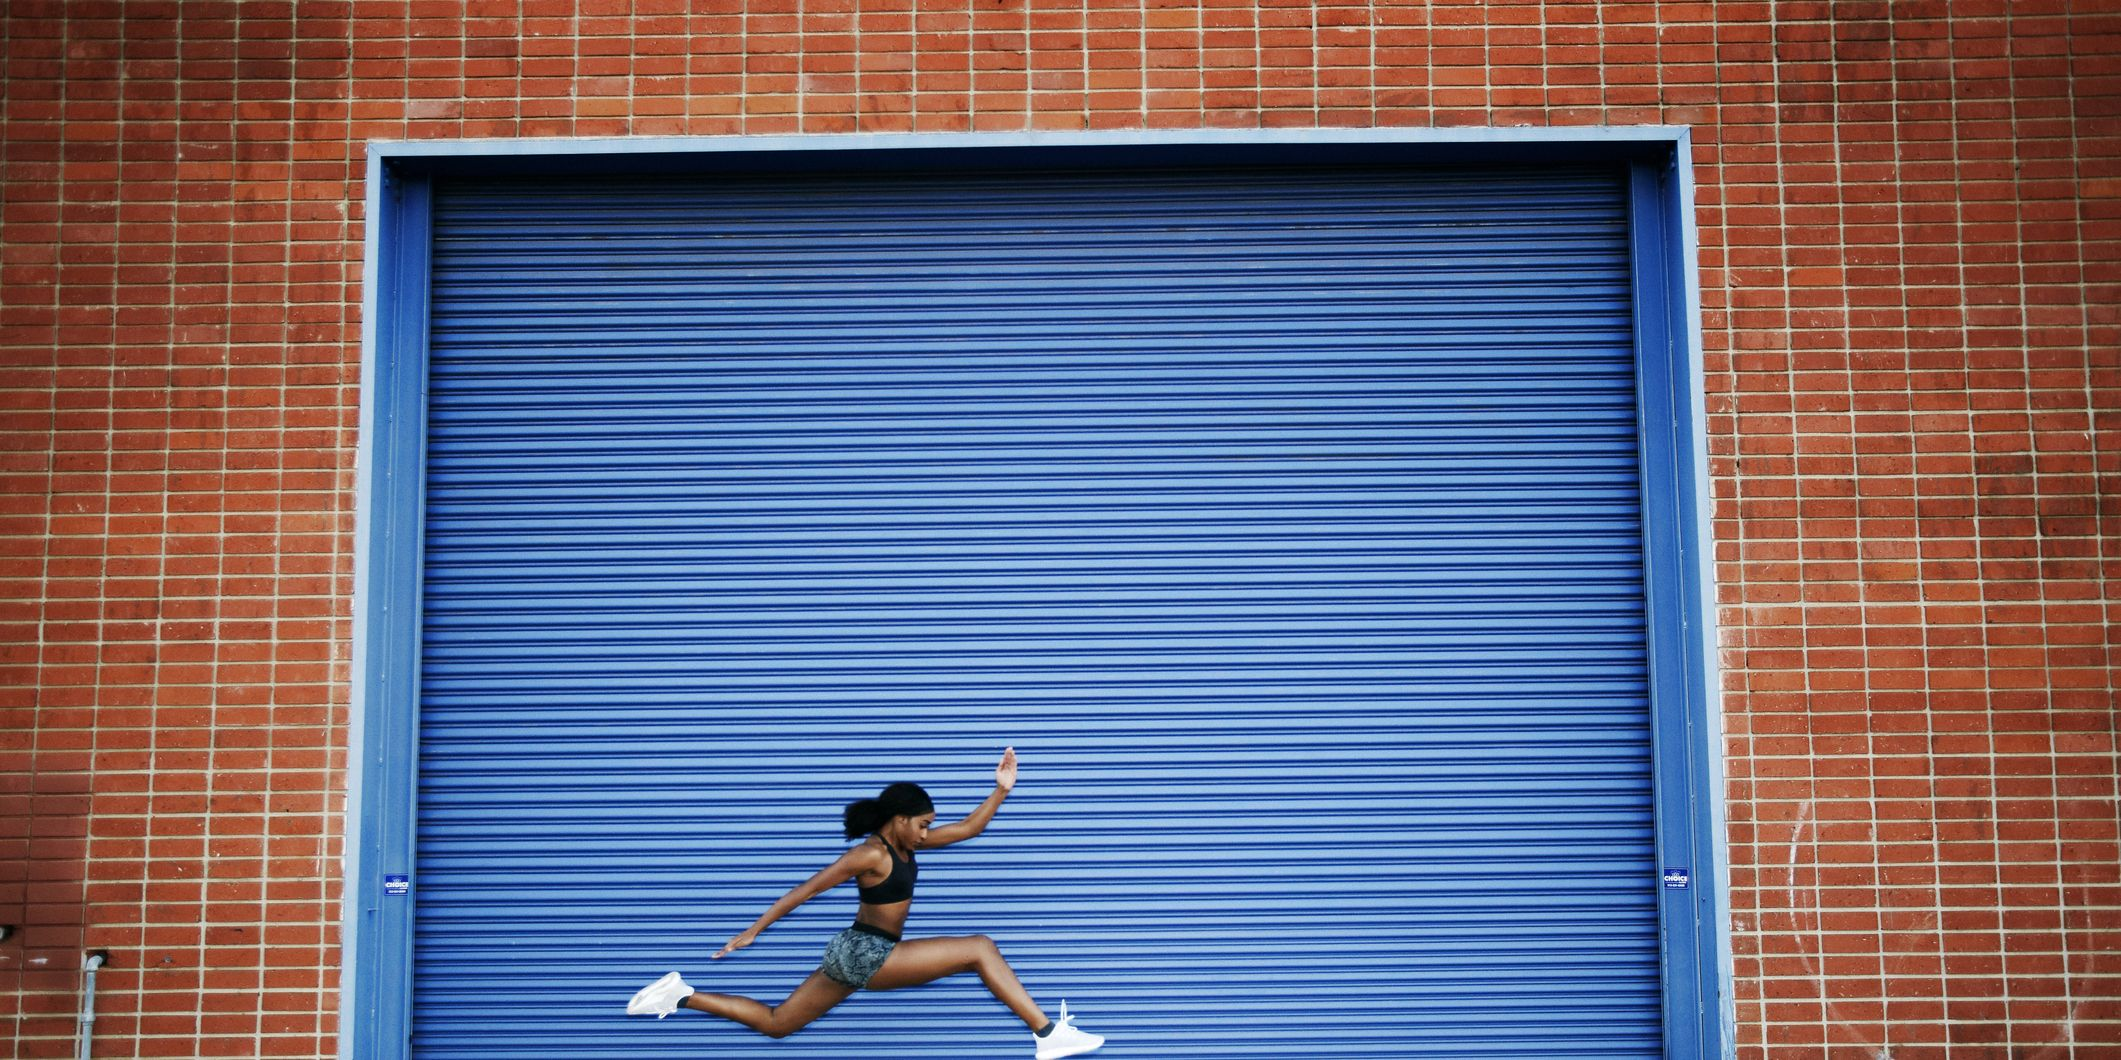 Mixed Race woman running and jumping near blue garage door